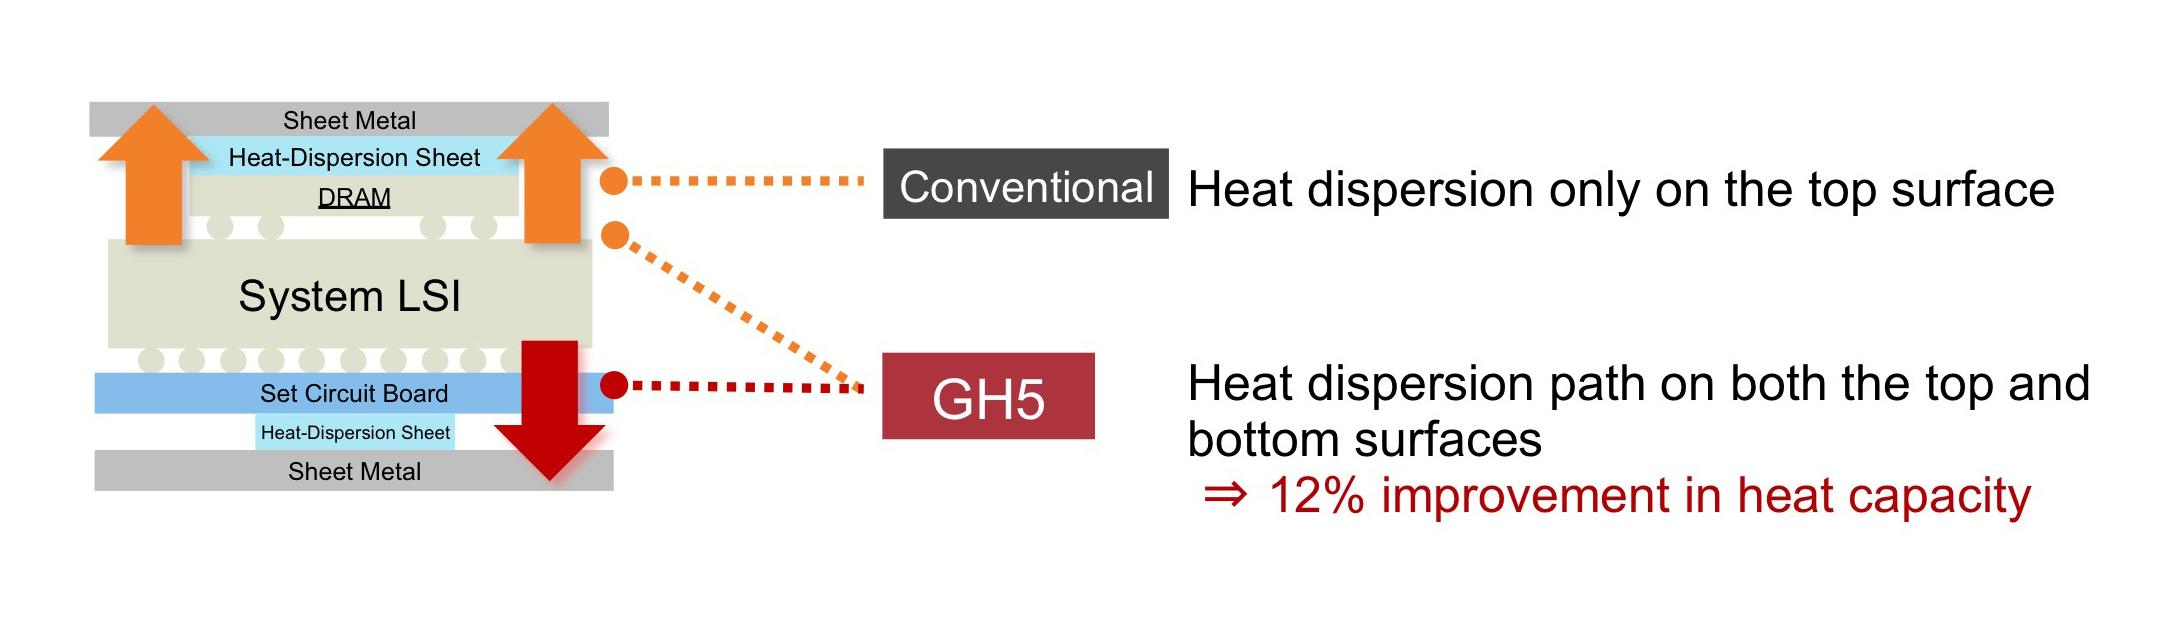 image: heat dispersion